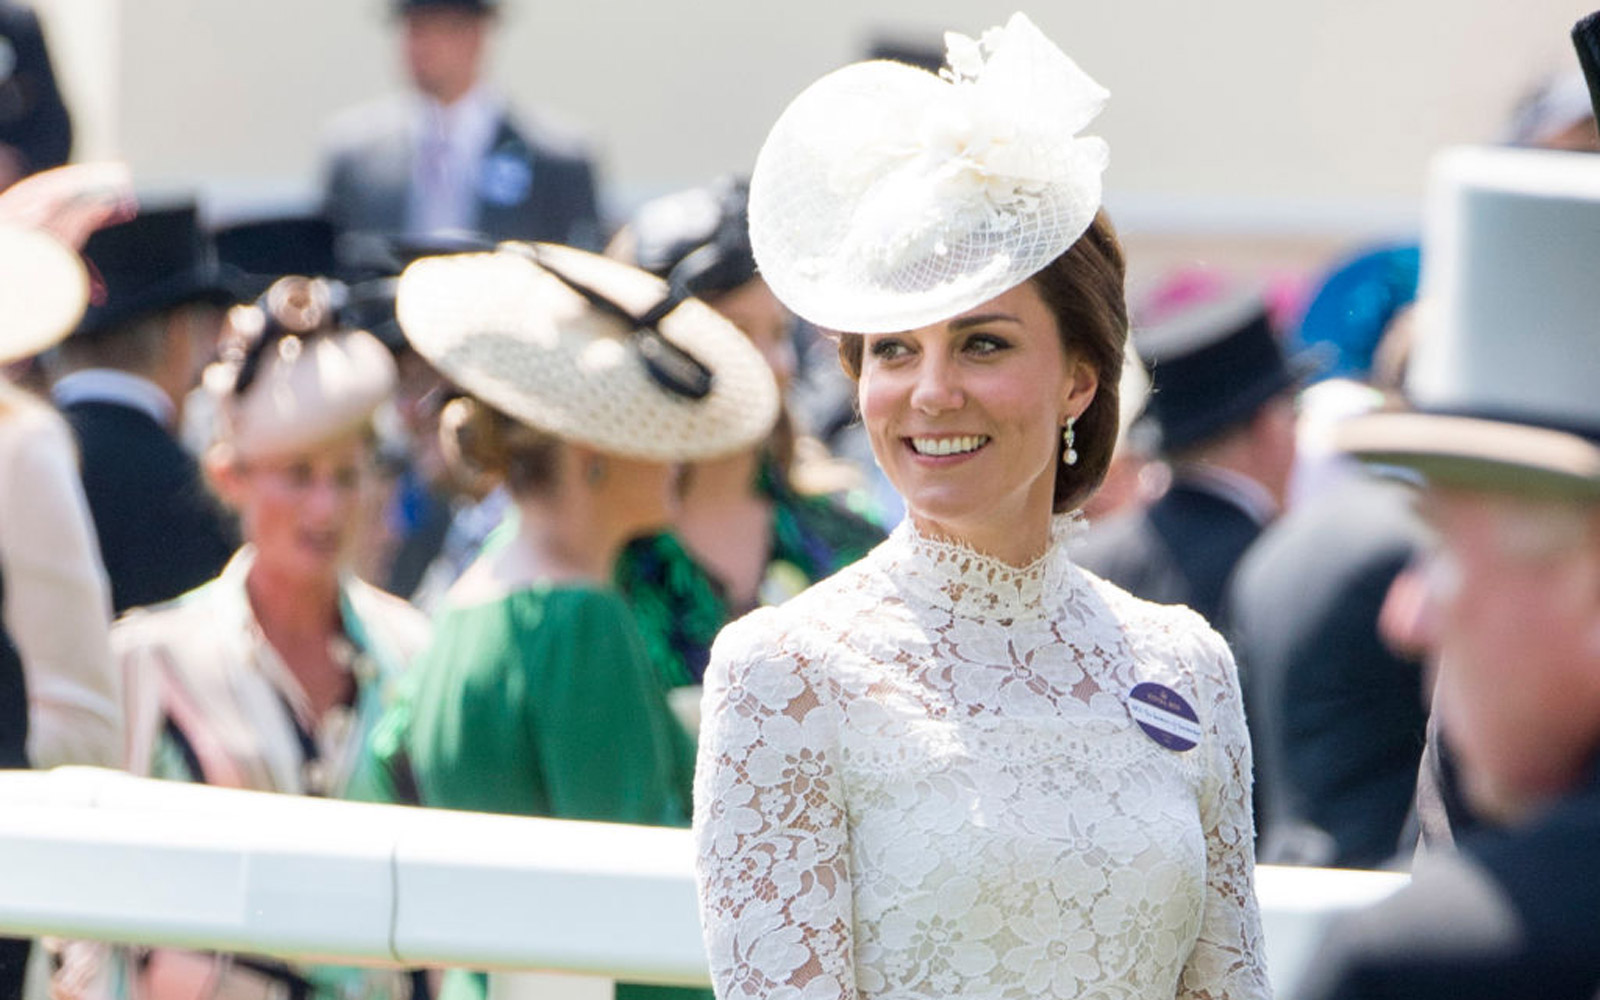 Kate Middleton Wears Lace Alexander McQueen Dress for Royal Ascot